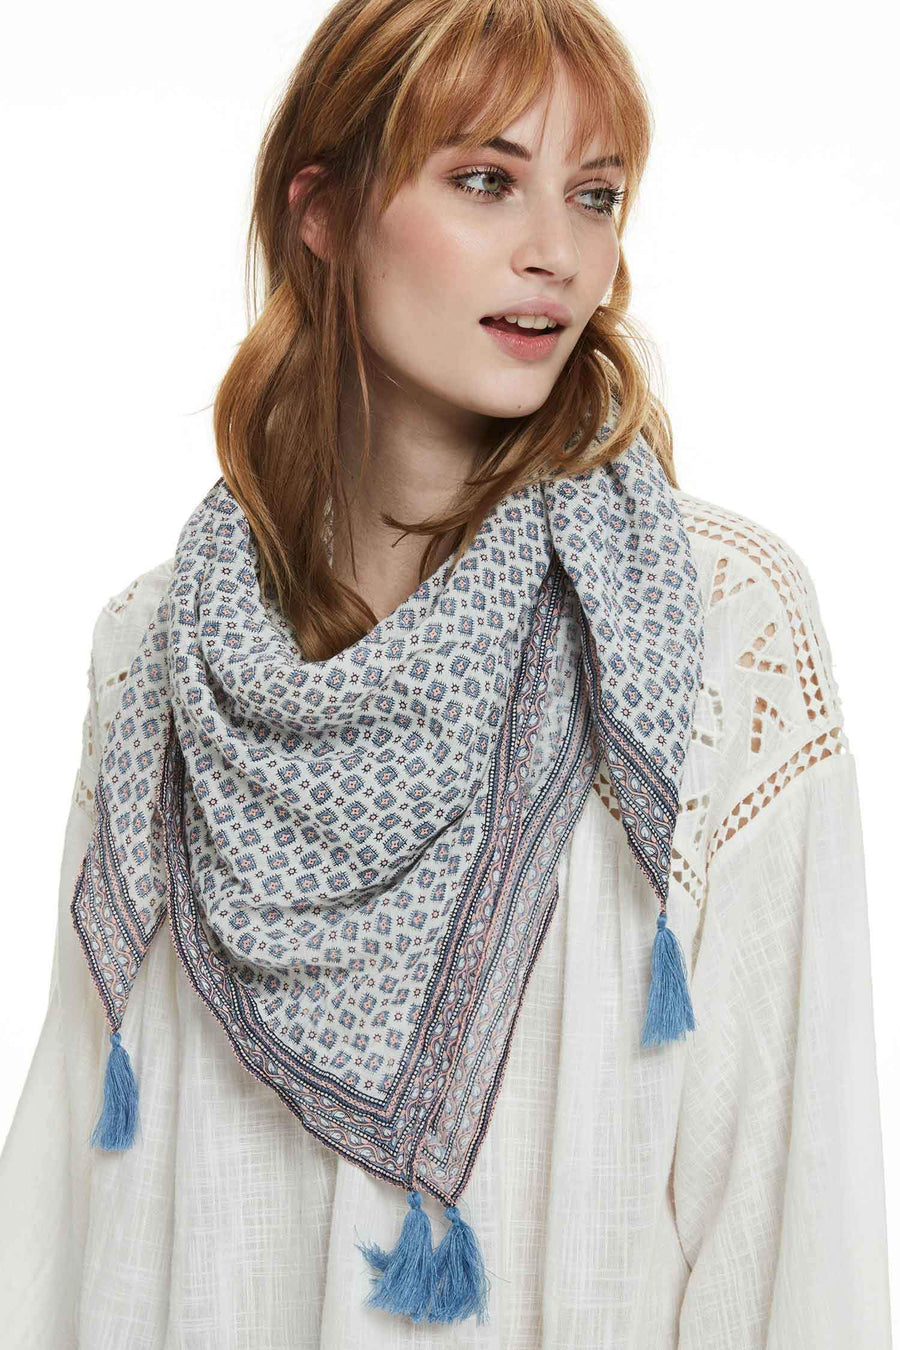 Cotton Scarf in Combo C by Maison Scotch Frockaholics.com